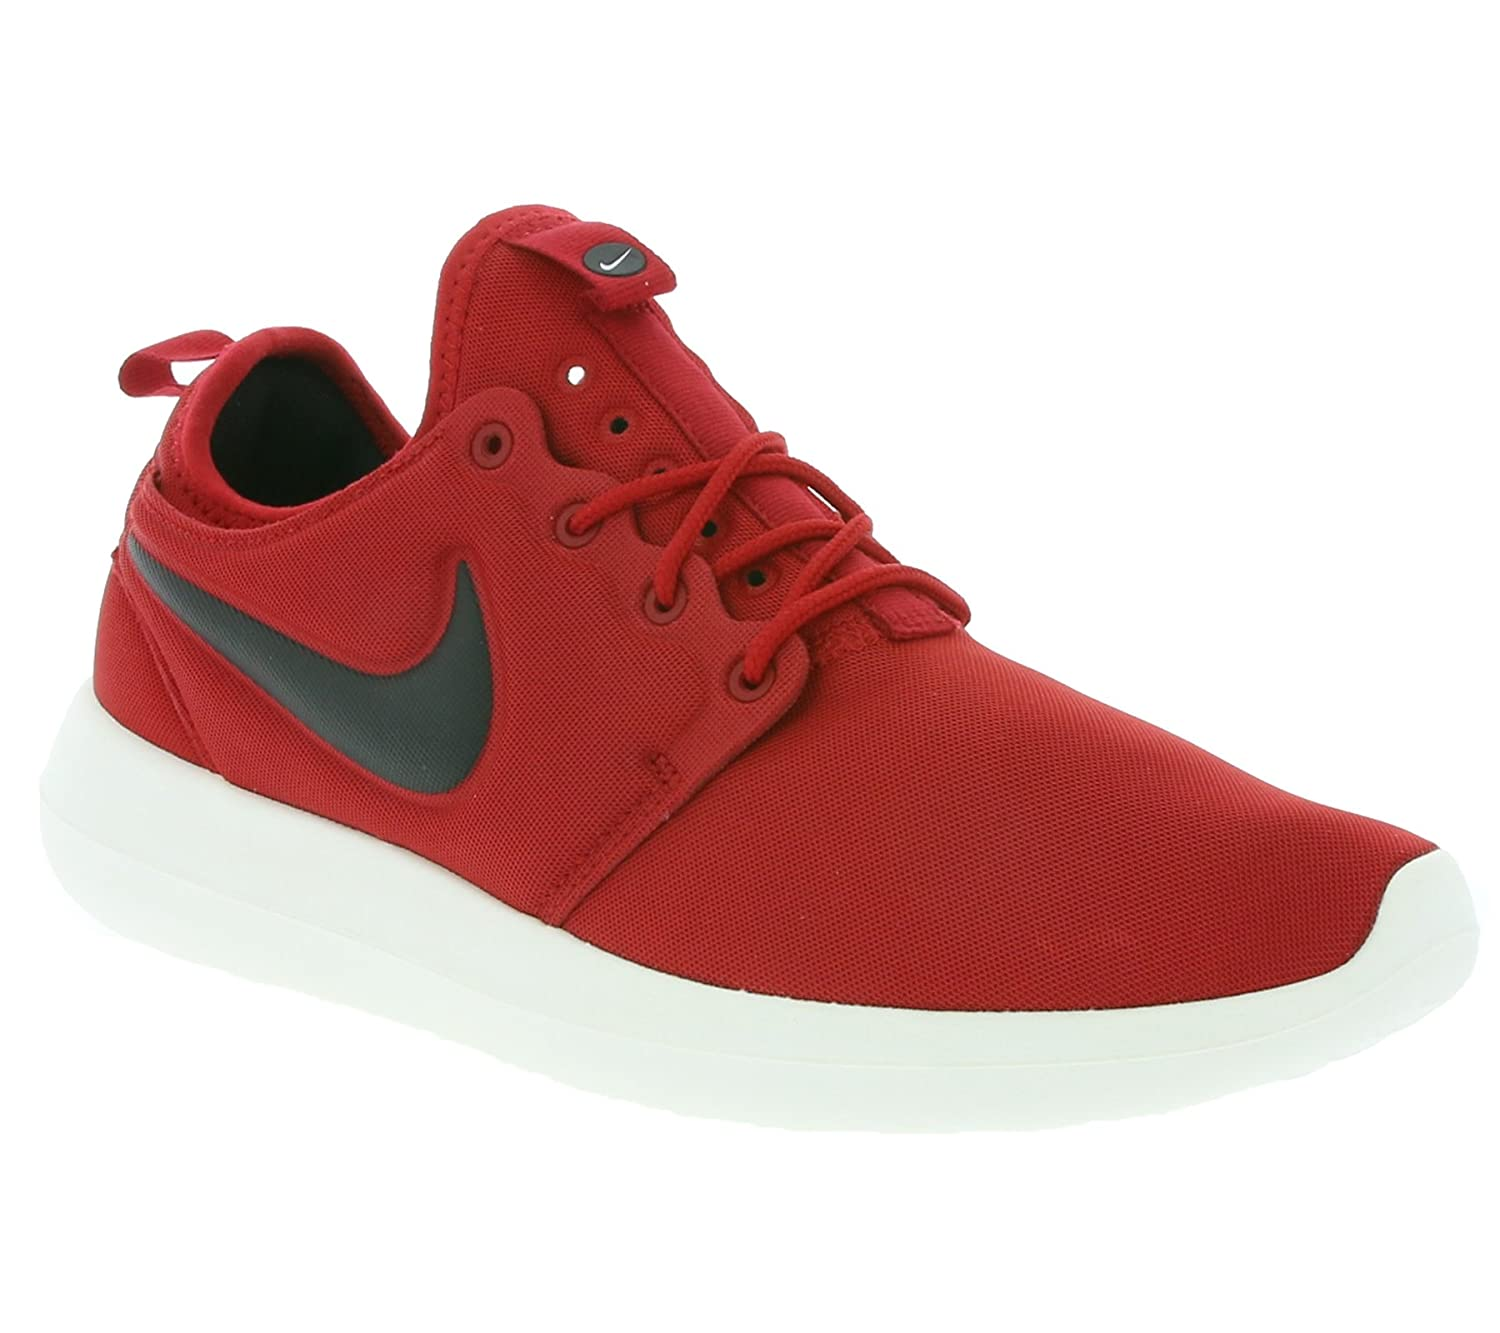 wholesale dealer 25e59 feeaf Nike Roshe Two Mens Shoes Gym Red Black Sail Volt 844656-600 (9. 5 D(M)  US)  Buy Online at Low Prices in India - Amazon.in